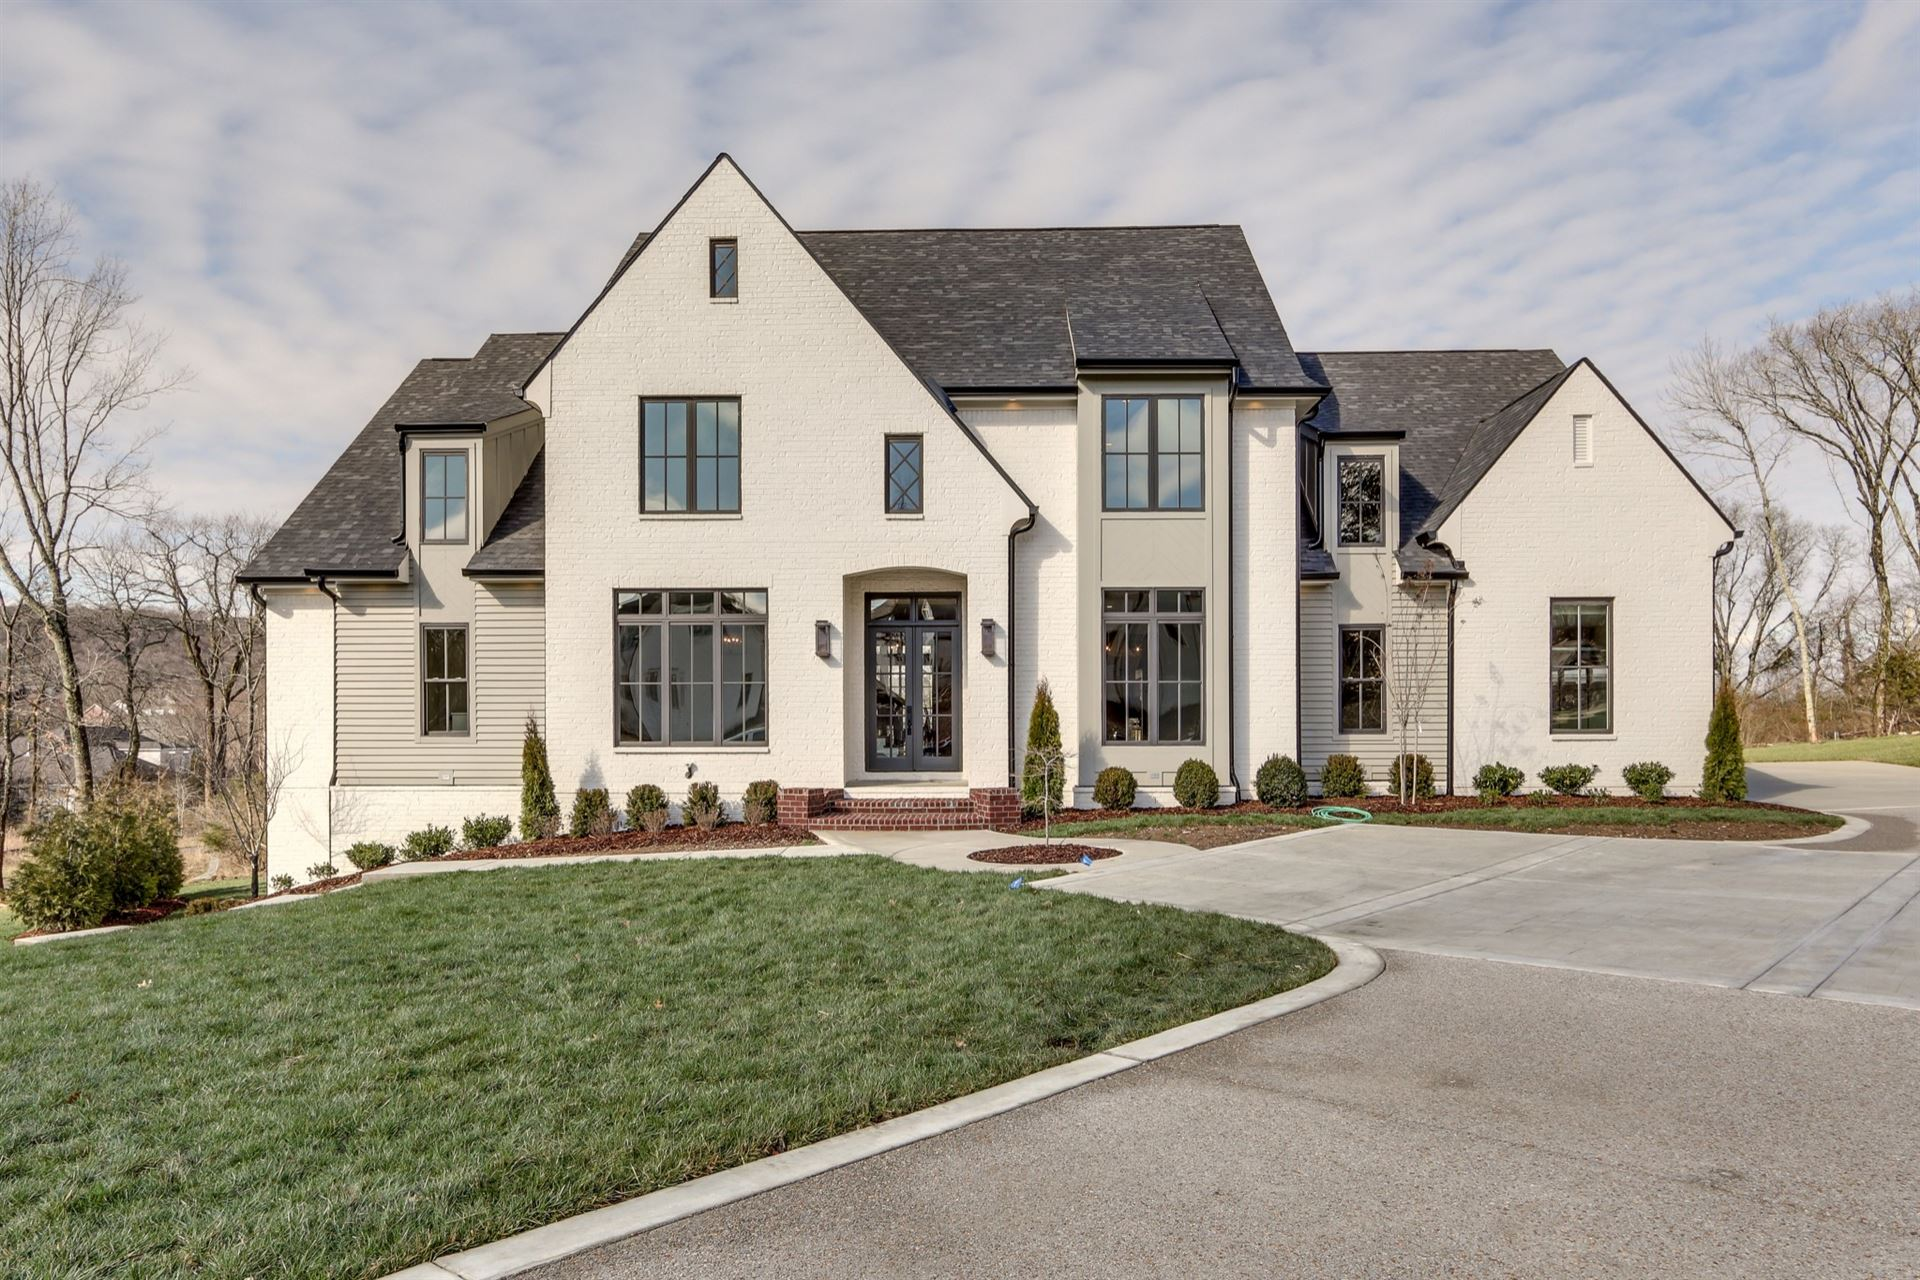 Photo of 1897 Traditions Circle *Lot 43*, Brentwood, TN 37027 (MLS # 2220639)